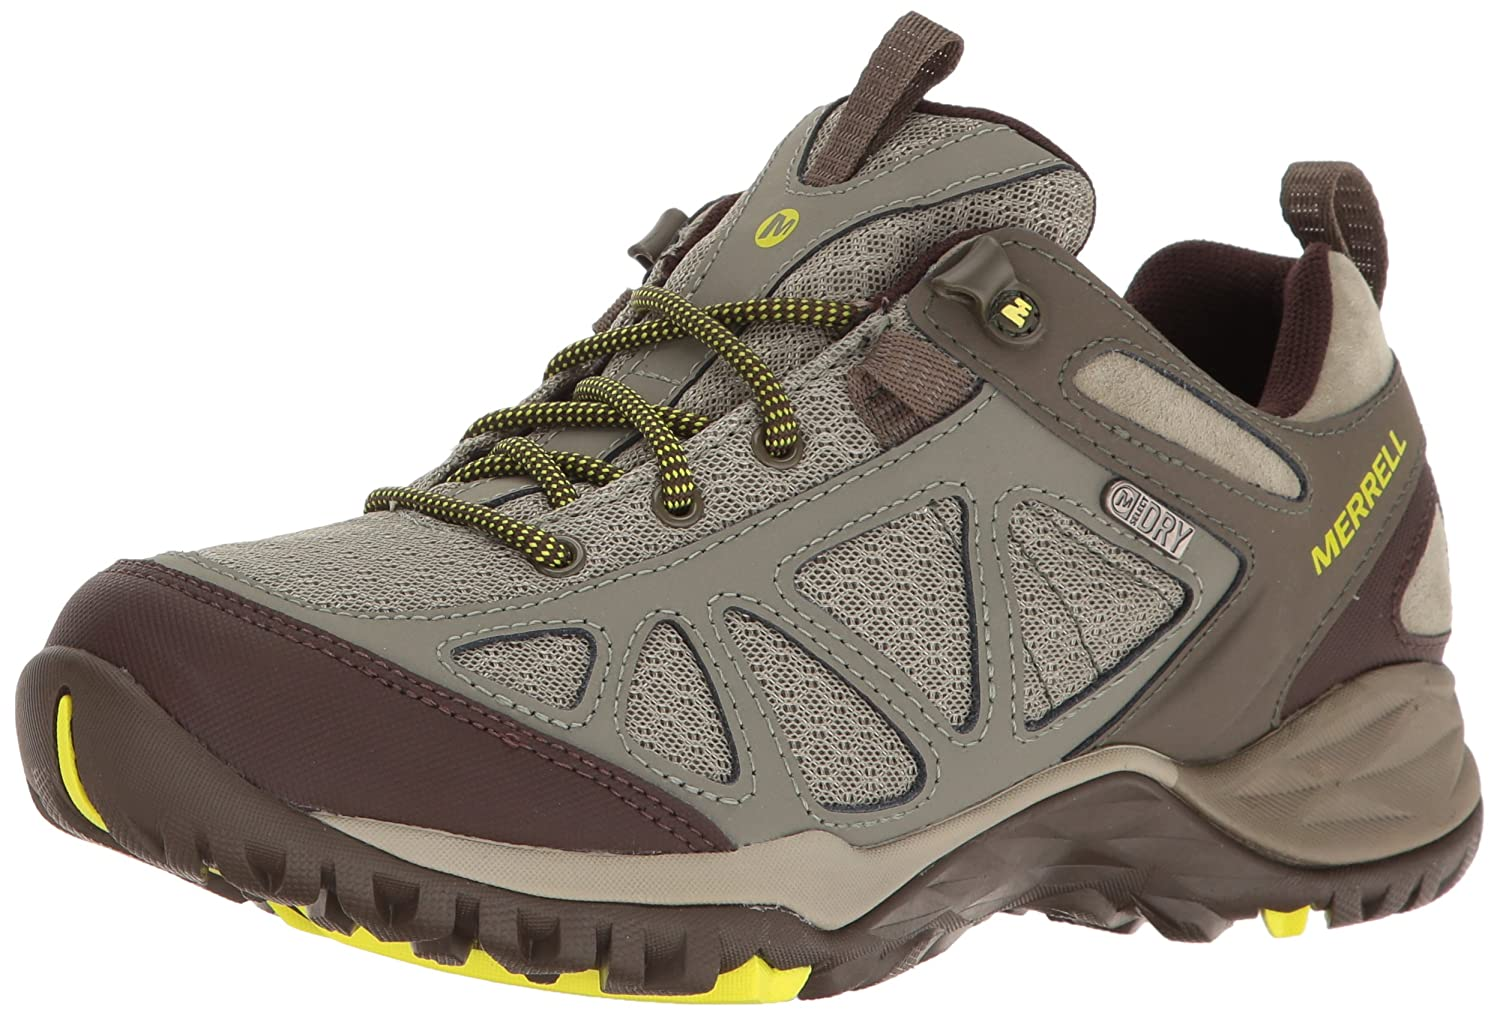 Merrell Women's Siren Sport Q2 Waterproof Hiking Shoe B005AVCWXC 11 W US|Dusty Olive